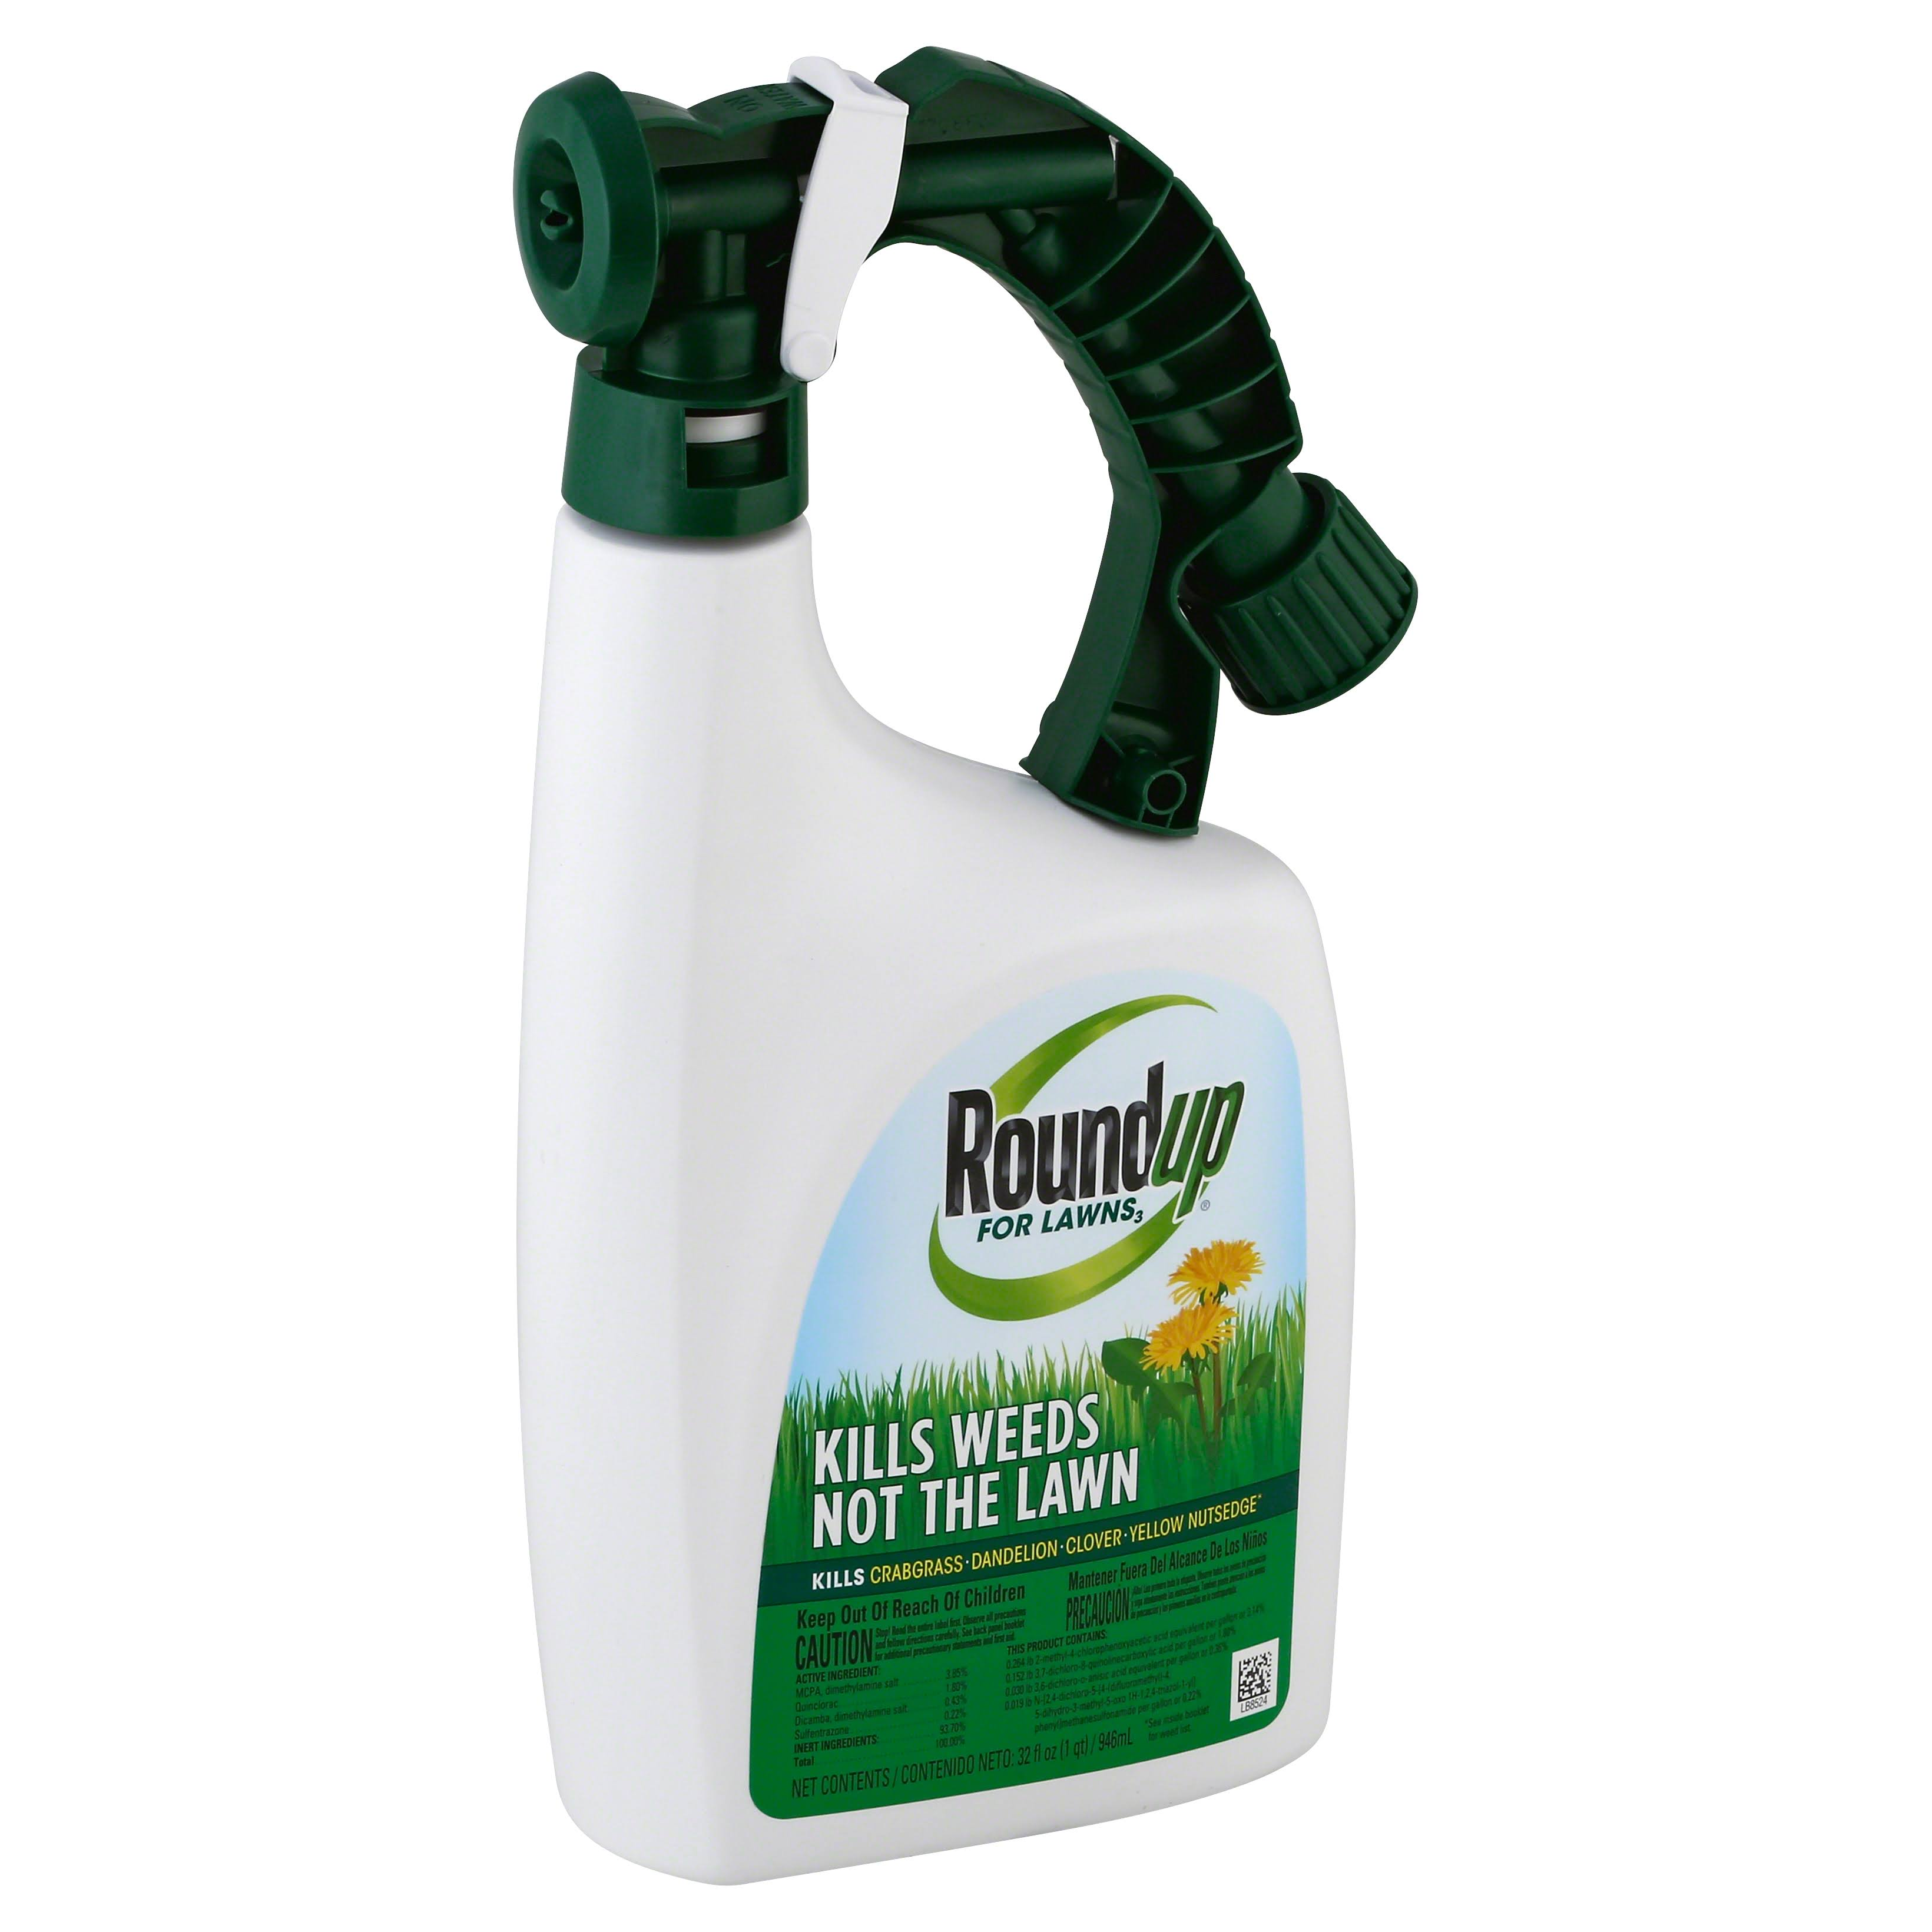 Round Up Selective Lawn Weed Killer Spray - 32oz